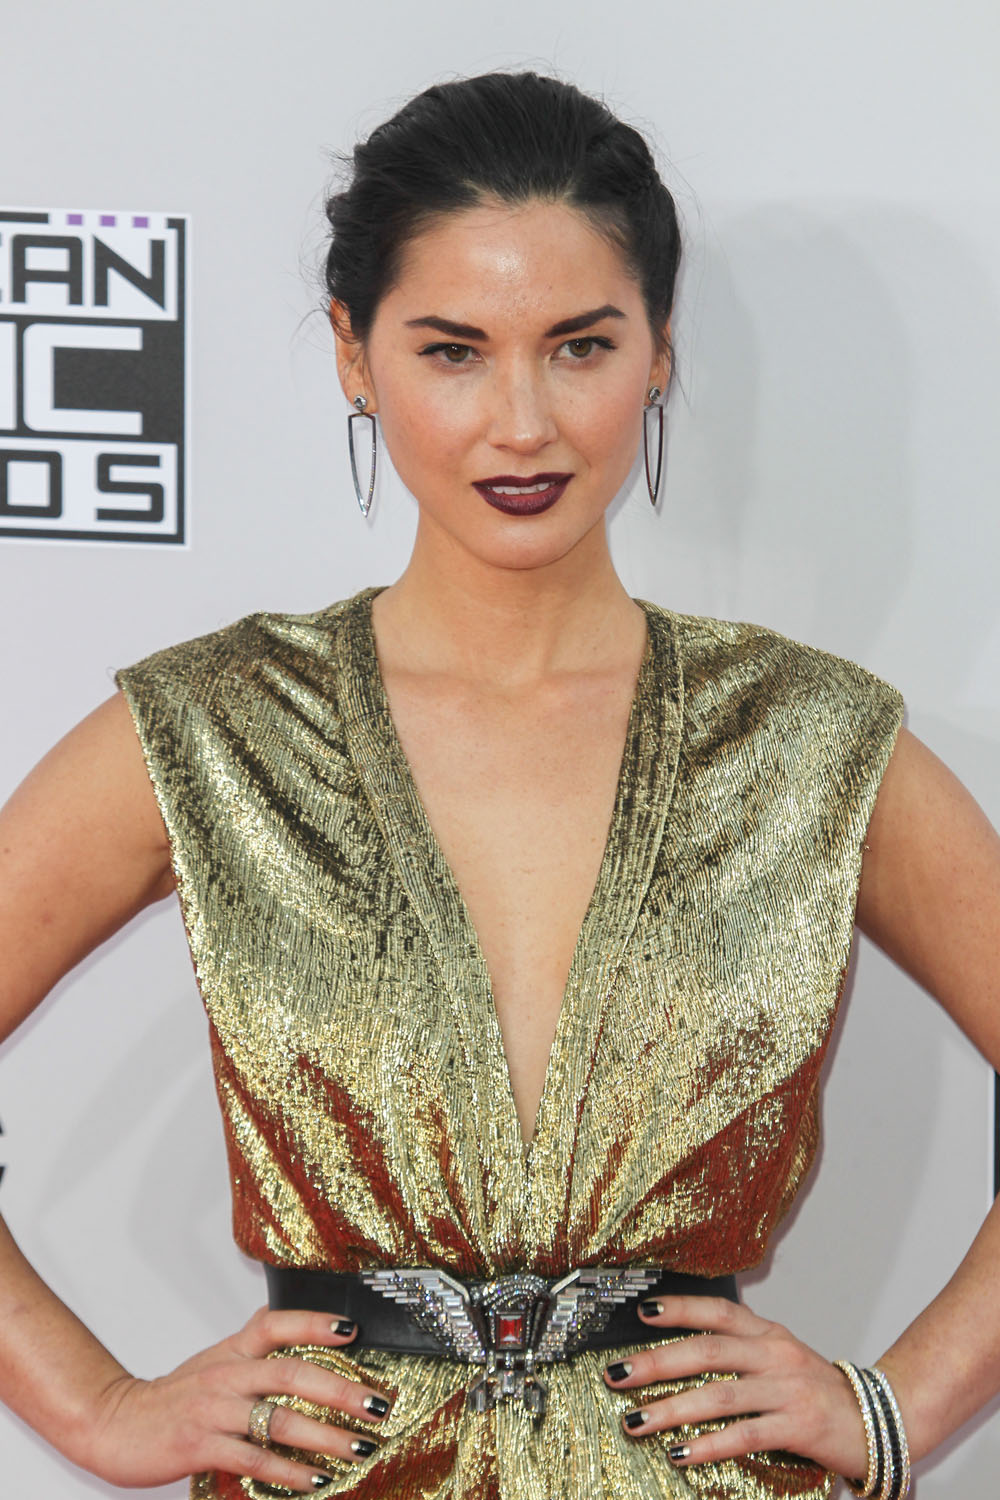 Olivia-Munn-in-Lanvin-2014-American-Music-Awards-.jpg